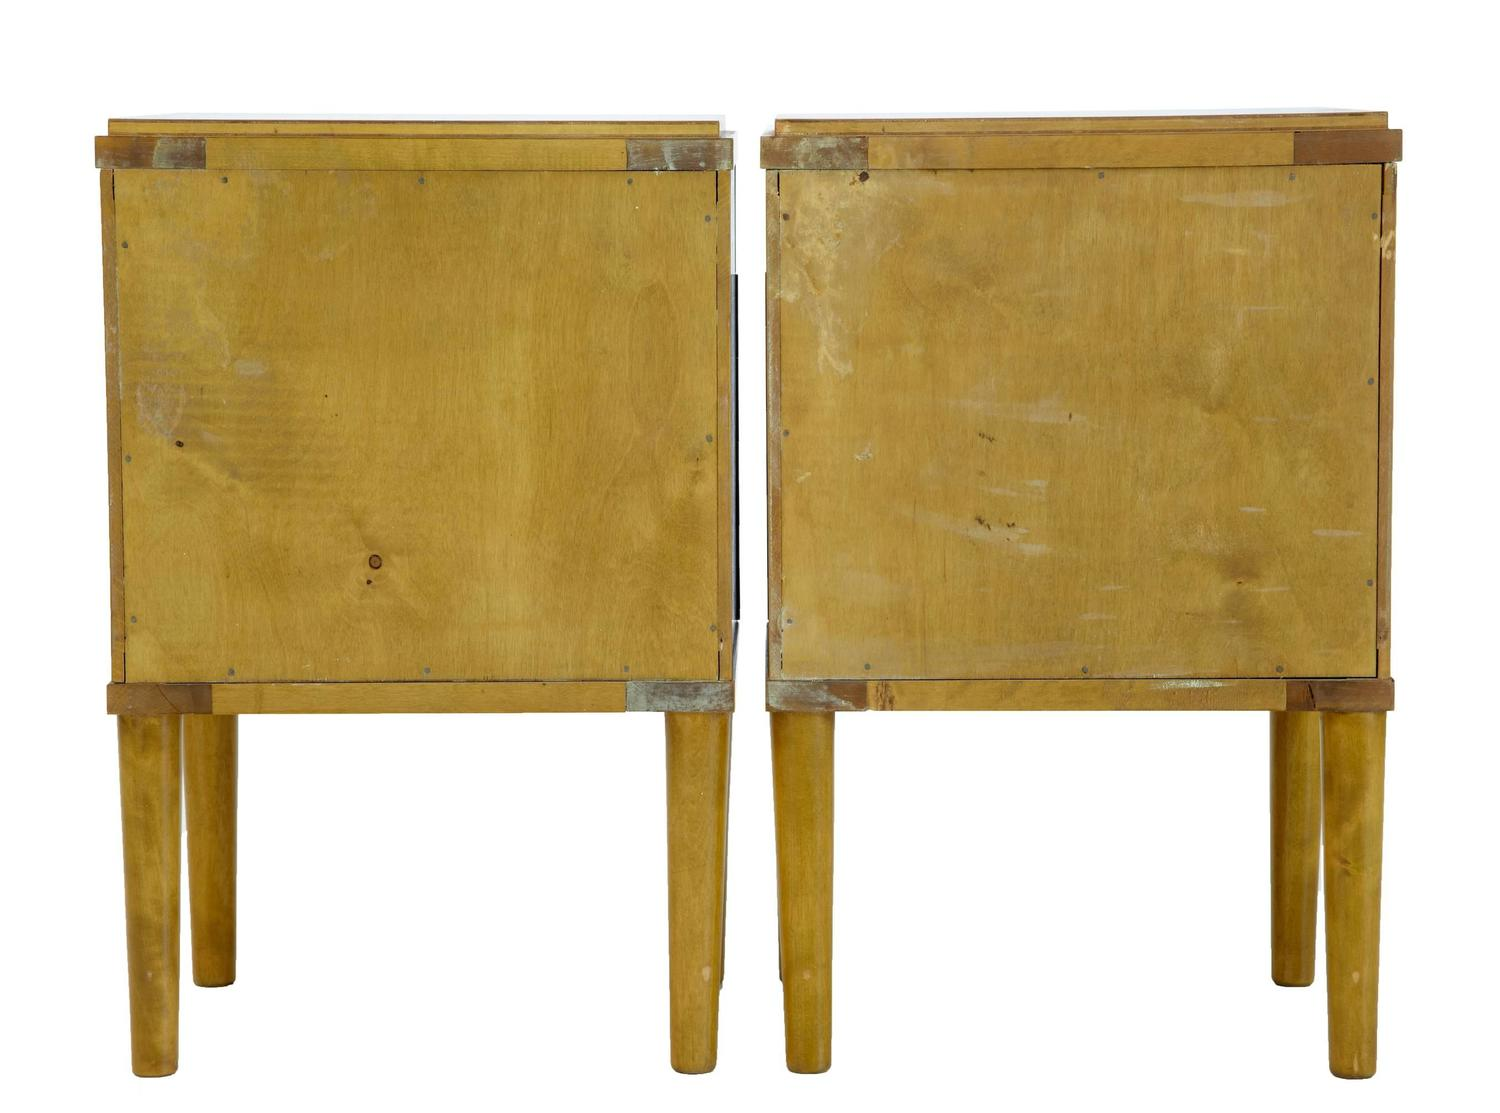 Pair Of Art Deco 1930s Satinwood And Birch Bedside Tables